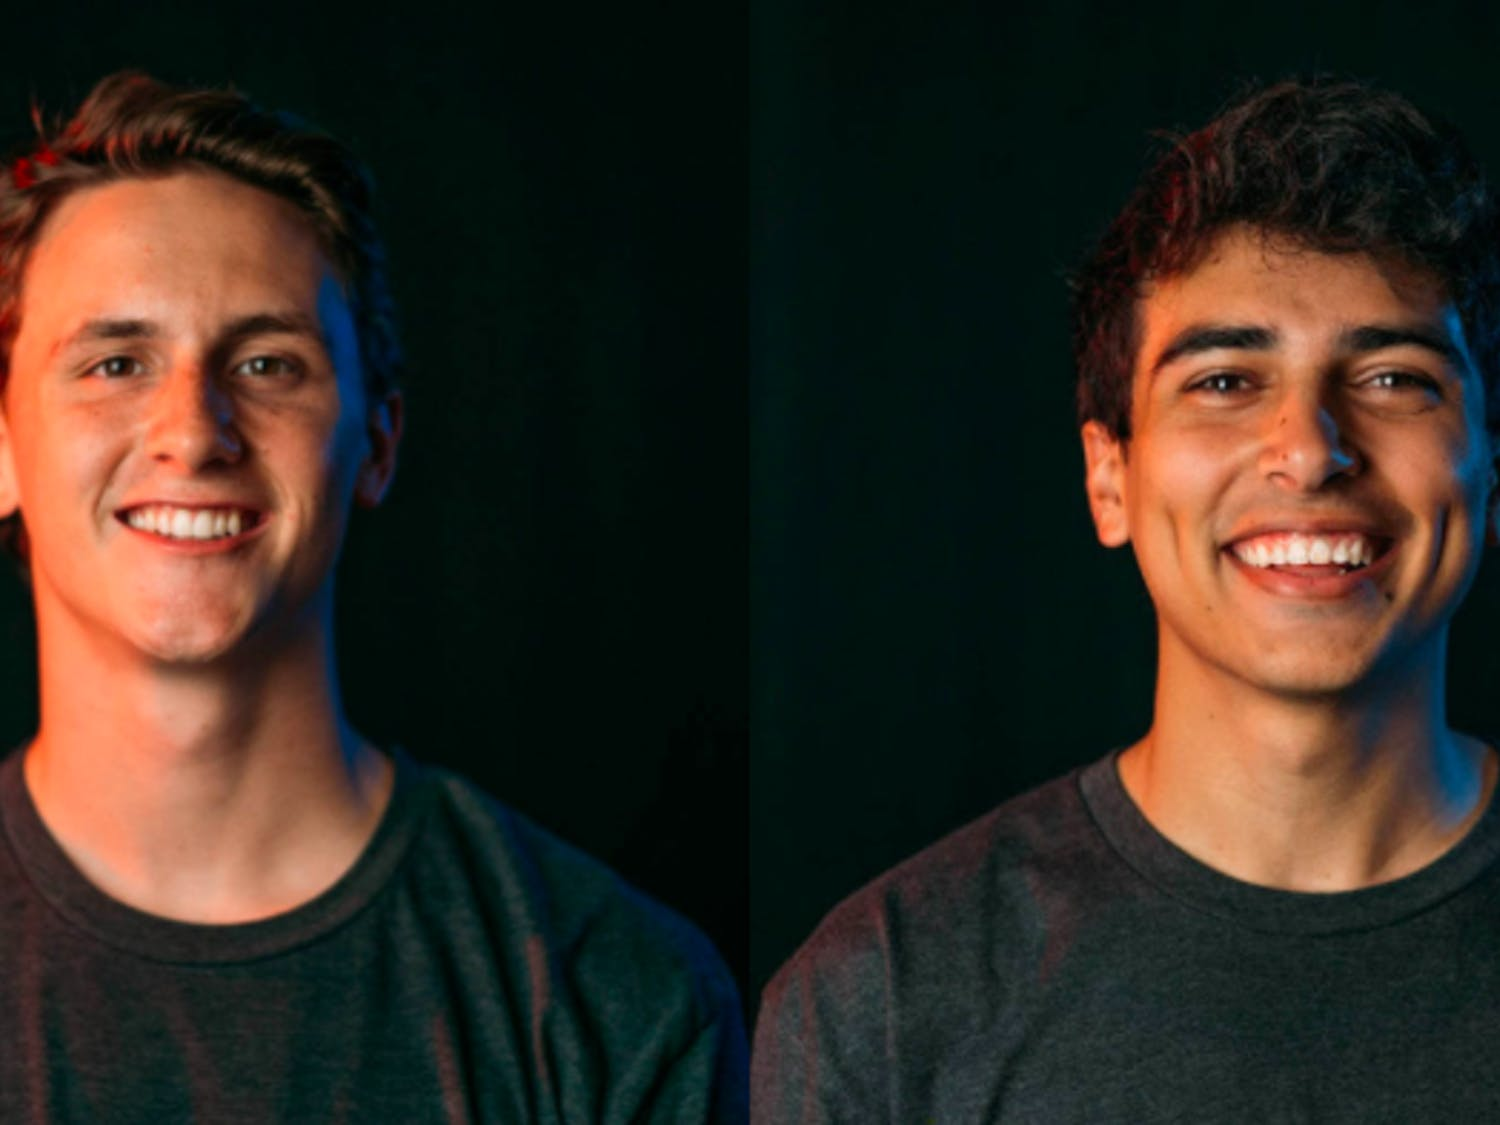 Landon Jones (left) and George El-Salawy (right) make up the team behind Digital Peak Productions powering local candidate outreach.